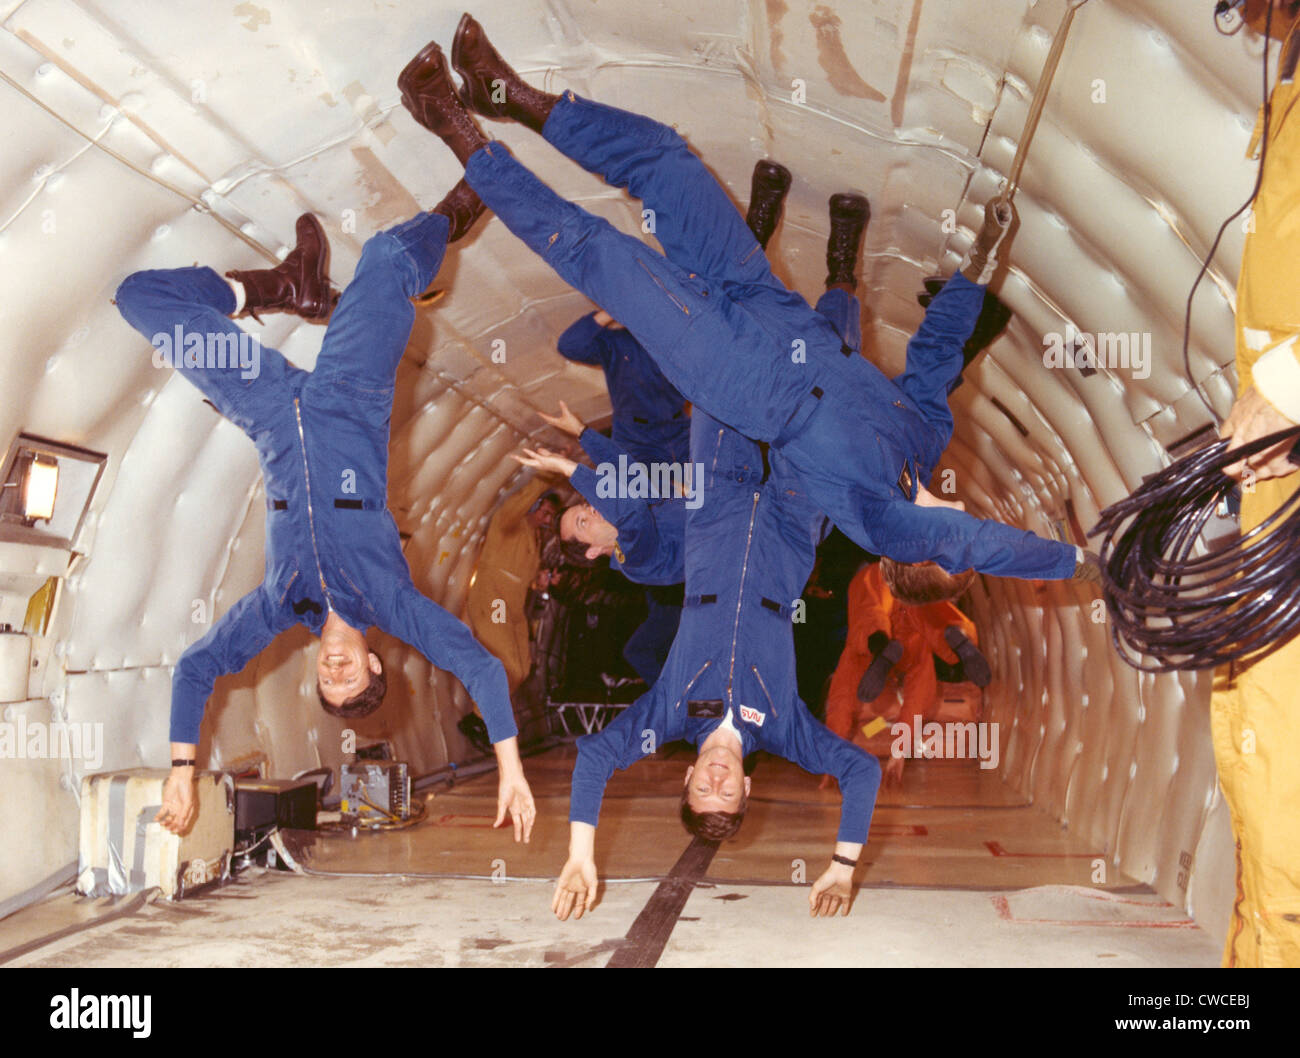 space shuttle gravity - photo #28